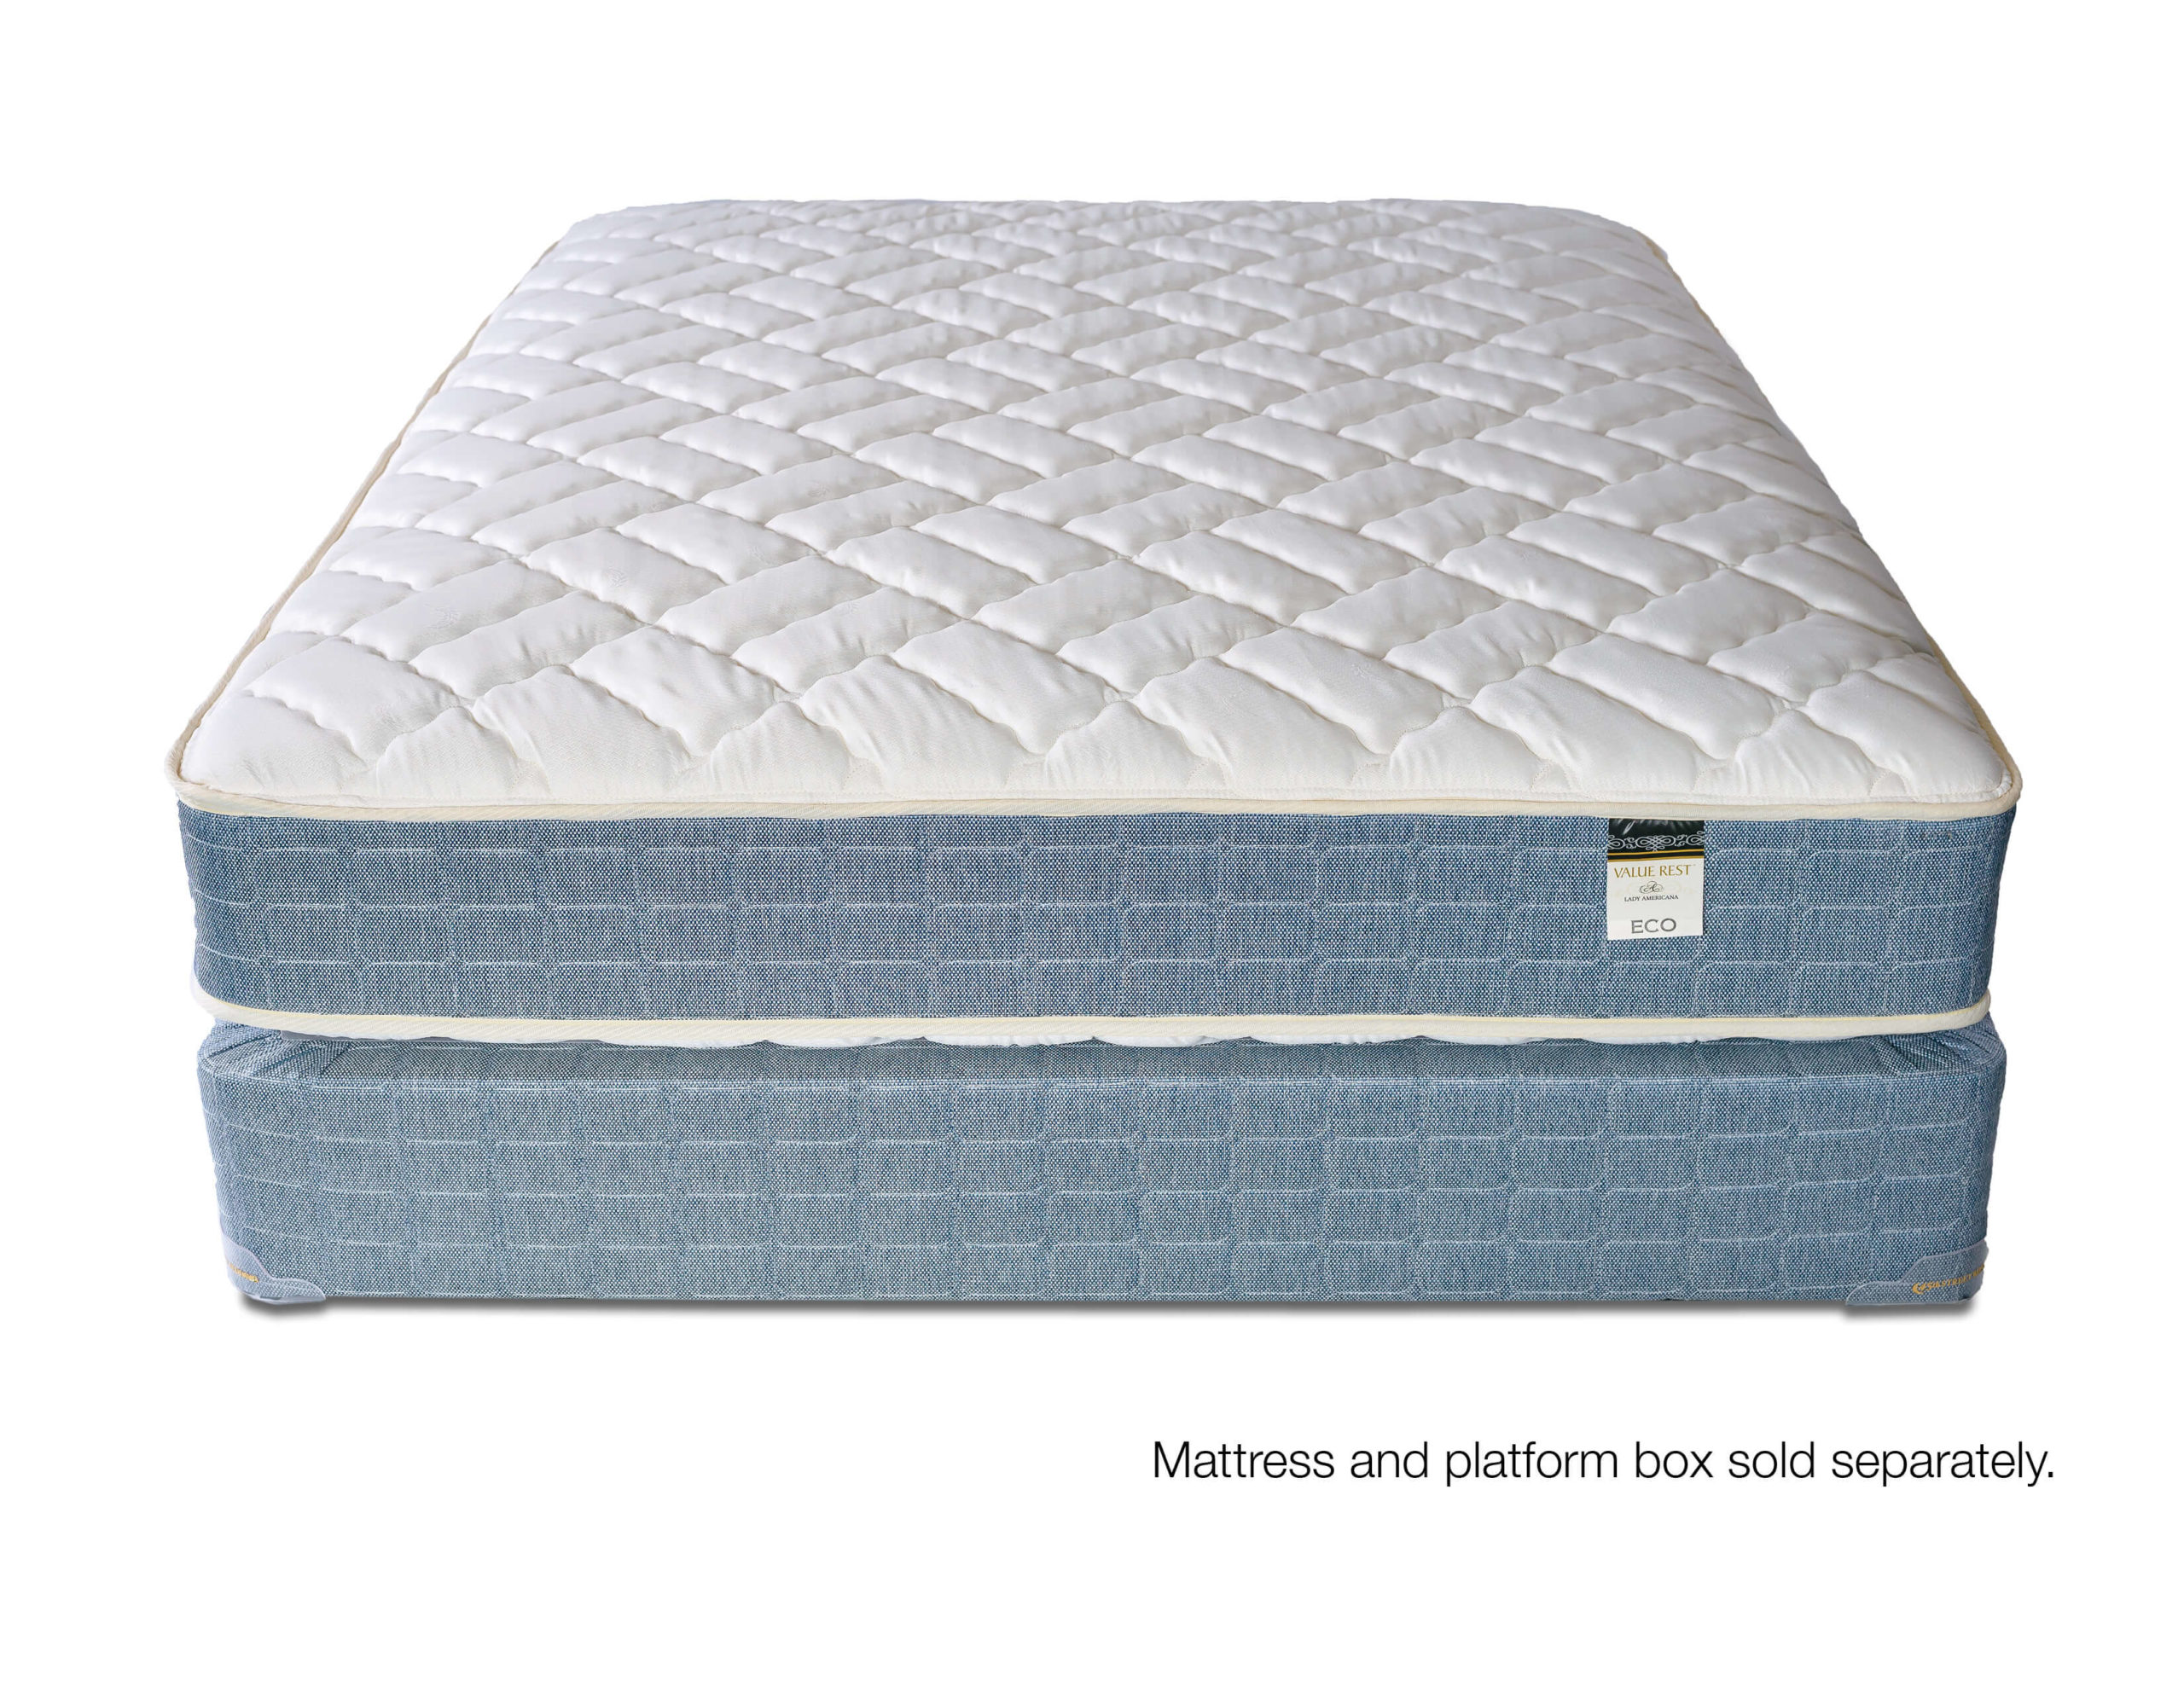 Value Rest Eco Innerspring Mattress by 2-Sided Classics| Seattle